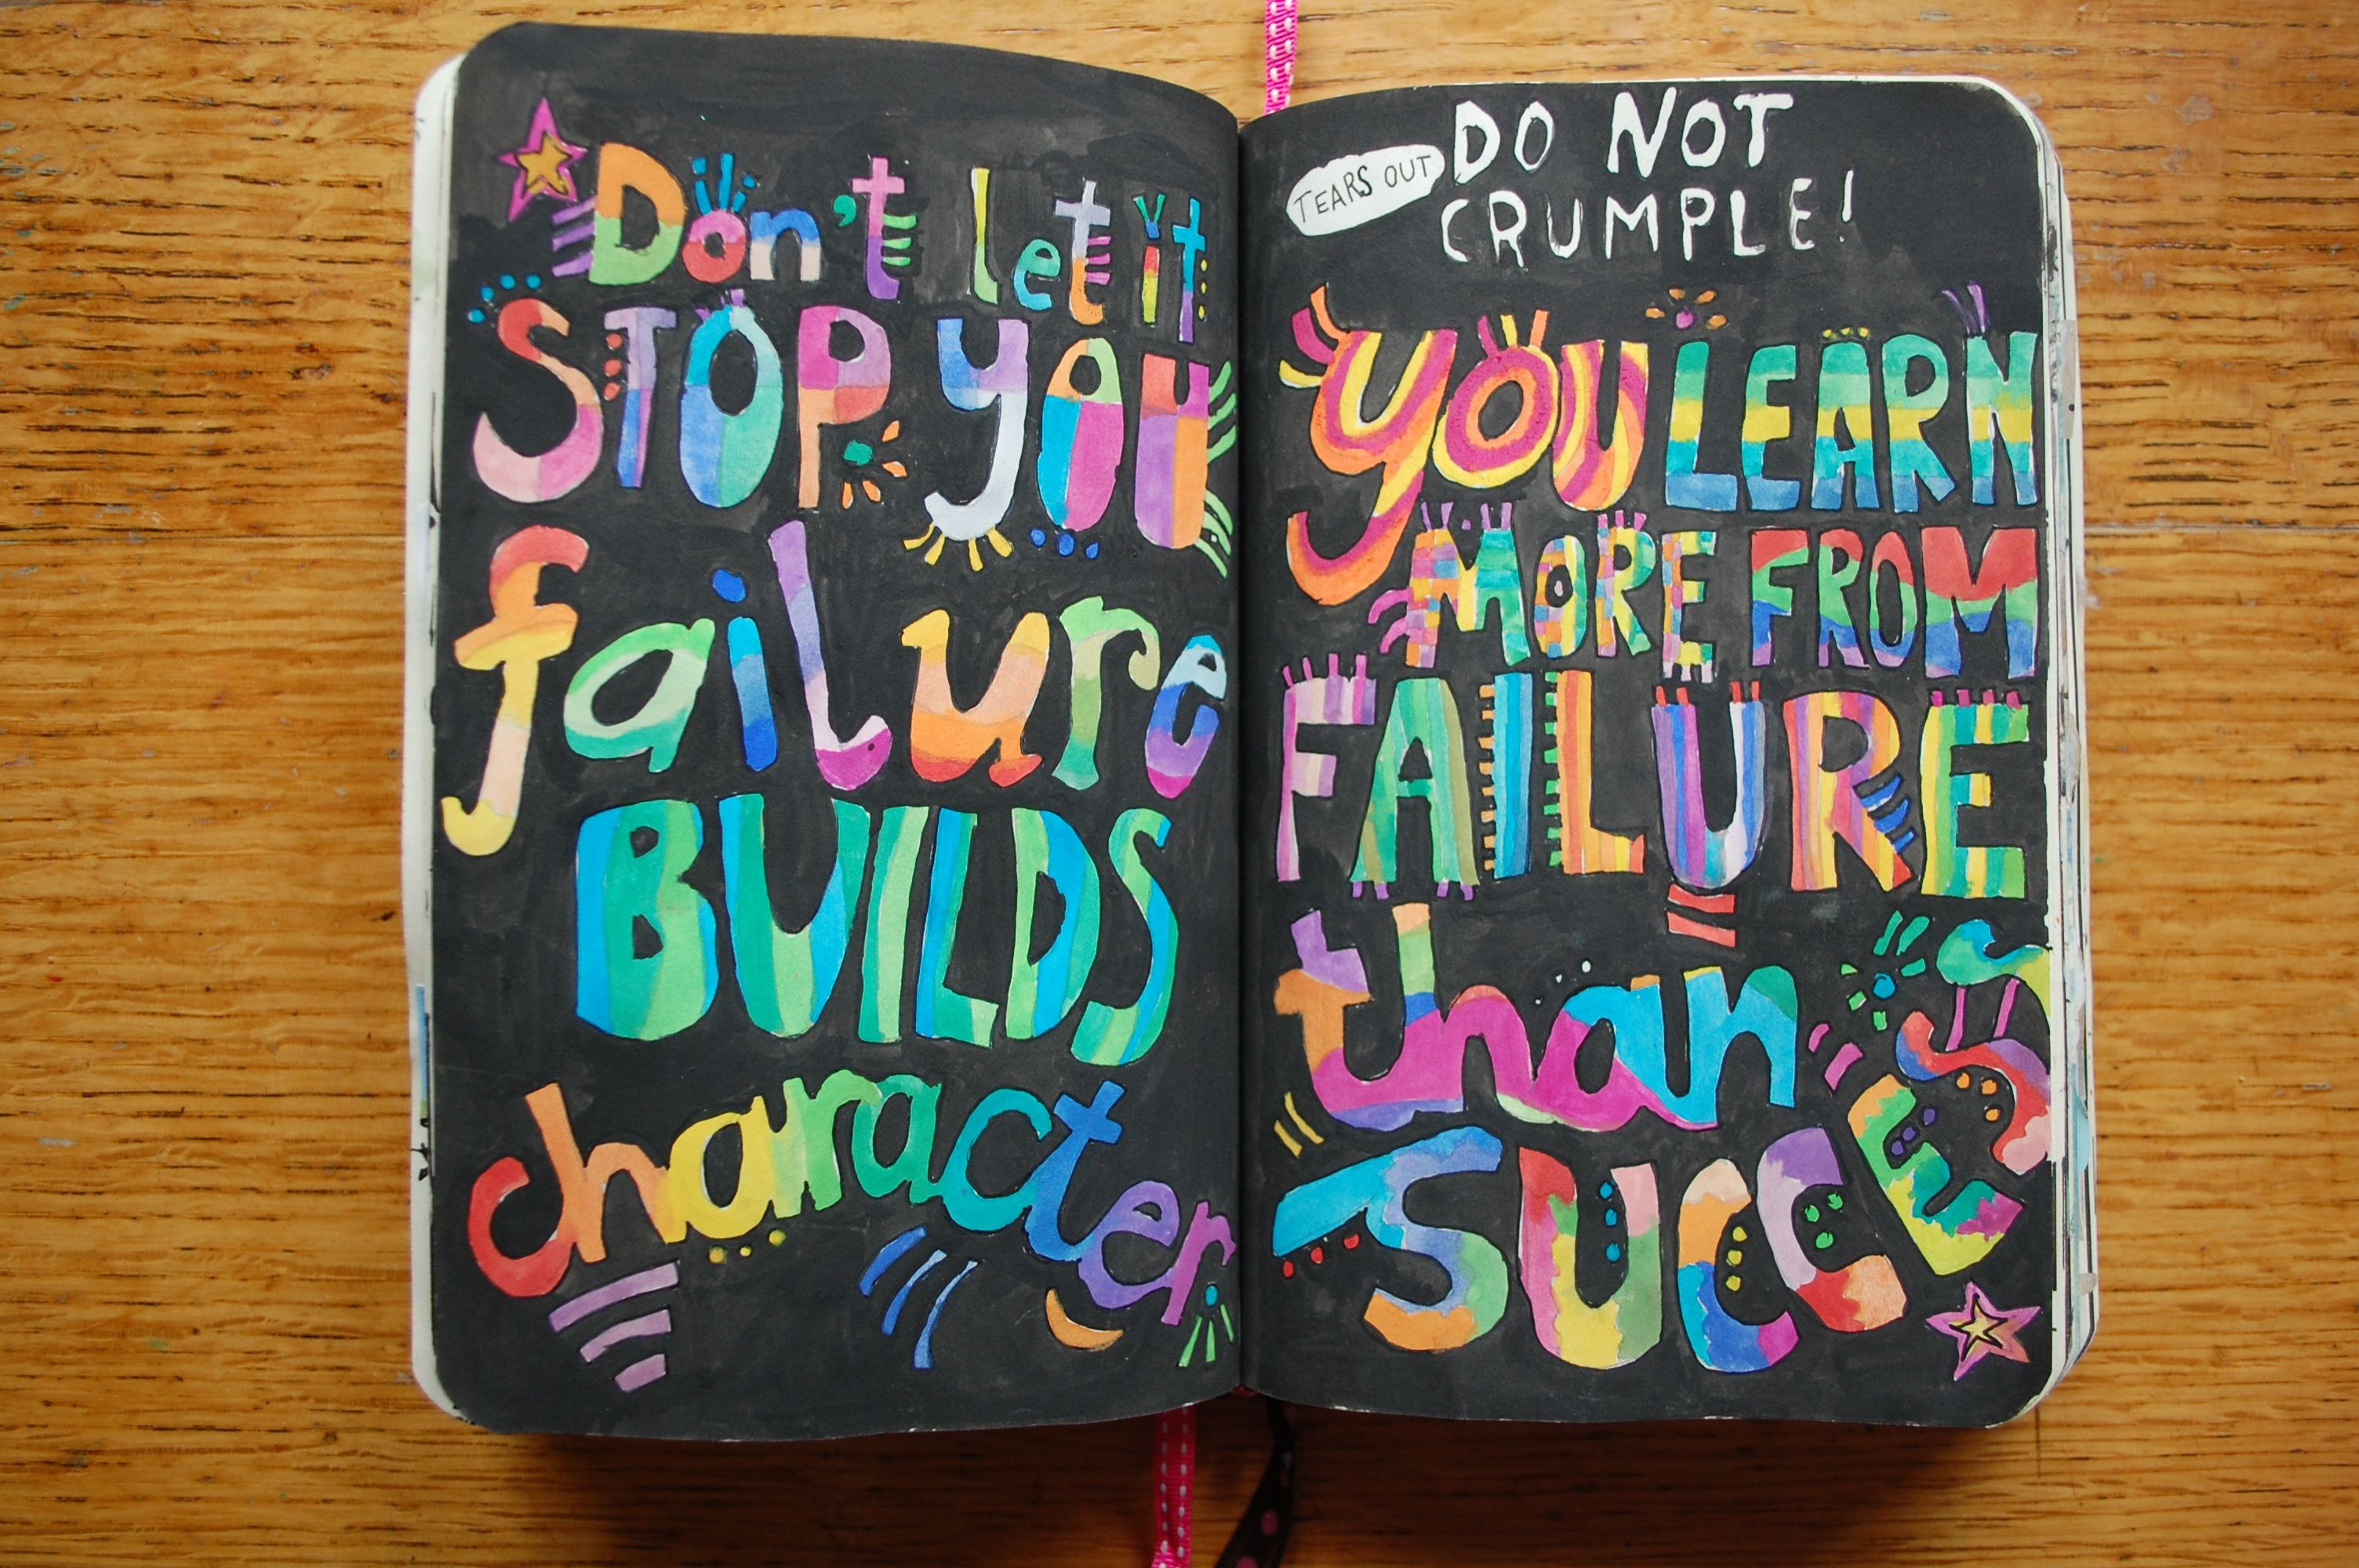 My Wreck This Journal - Crumple